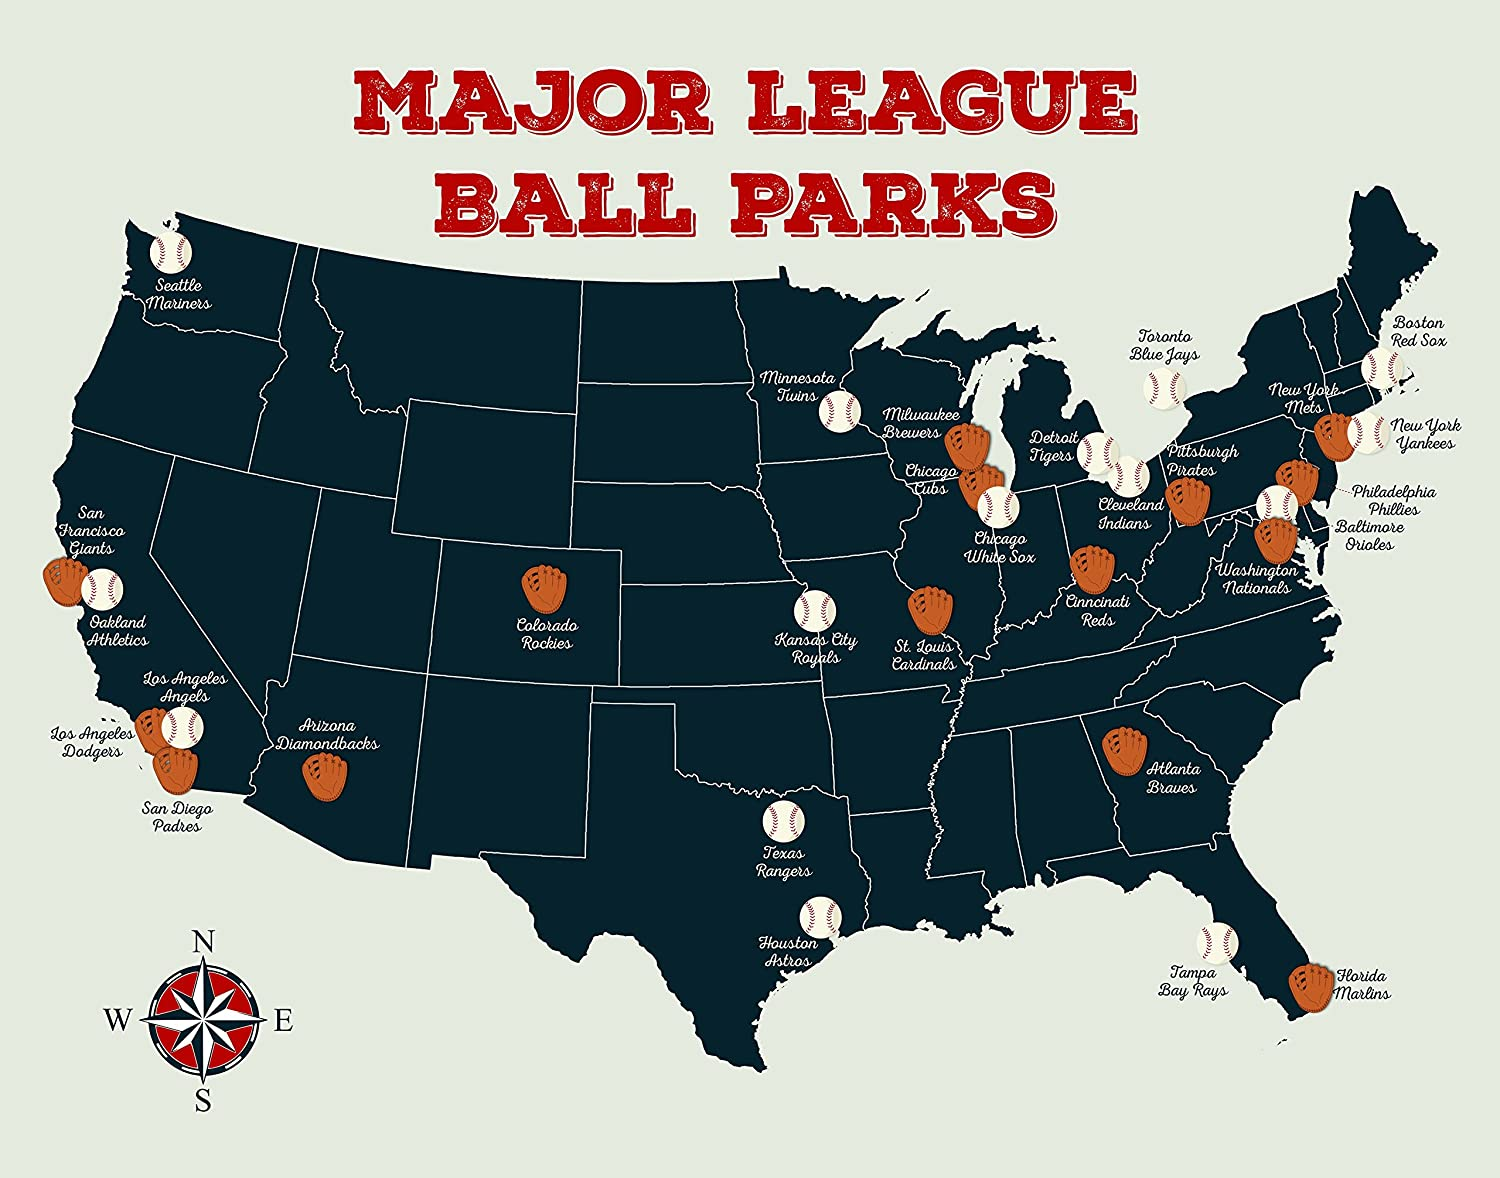 Baseball Stadium Map - Major League Ball Parks Map